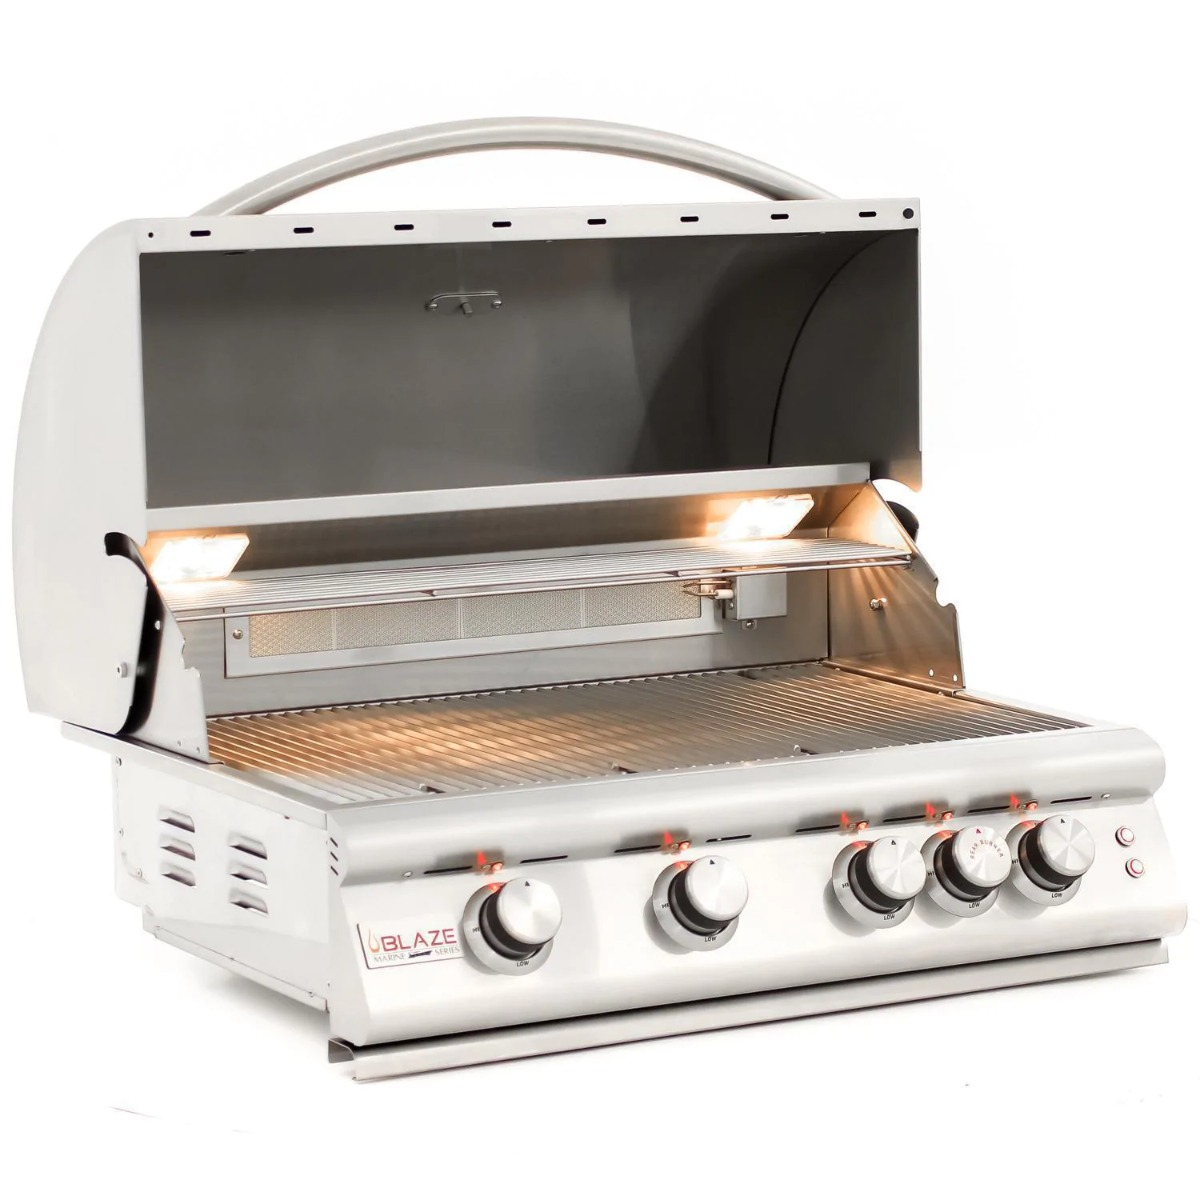 Blaze Premium LTE 32-Inch 4-Burner Built-In Natural Gas Grill in Marine Grade With Rear Infrared Burner & Grill Lights - blz-4lte2-ng-mg